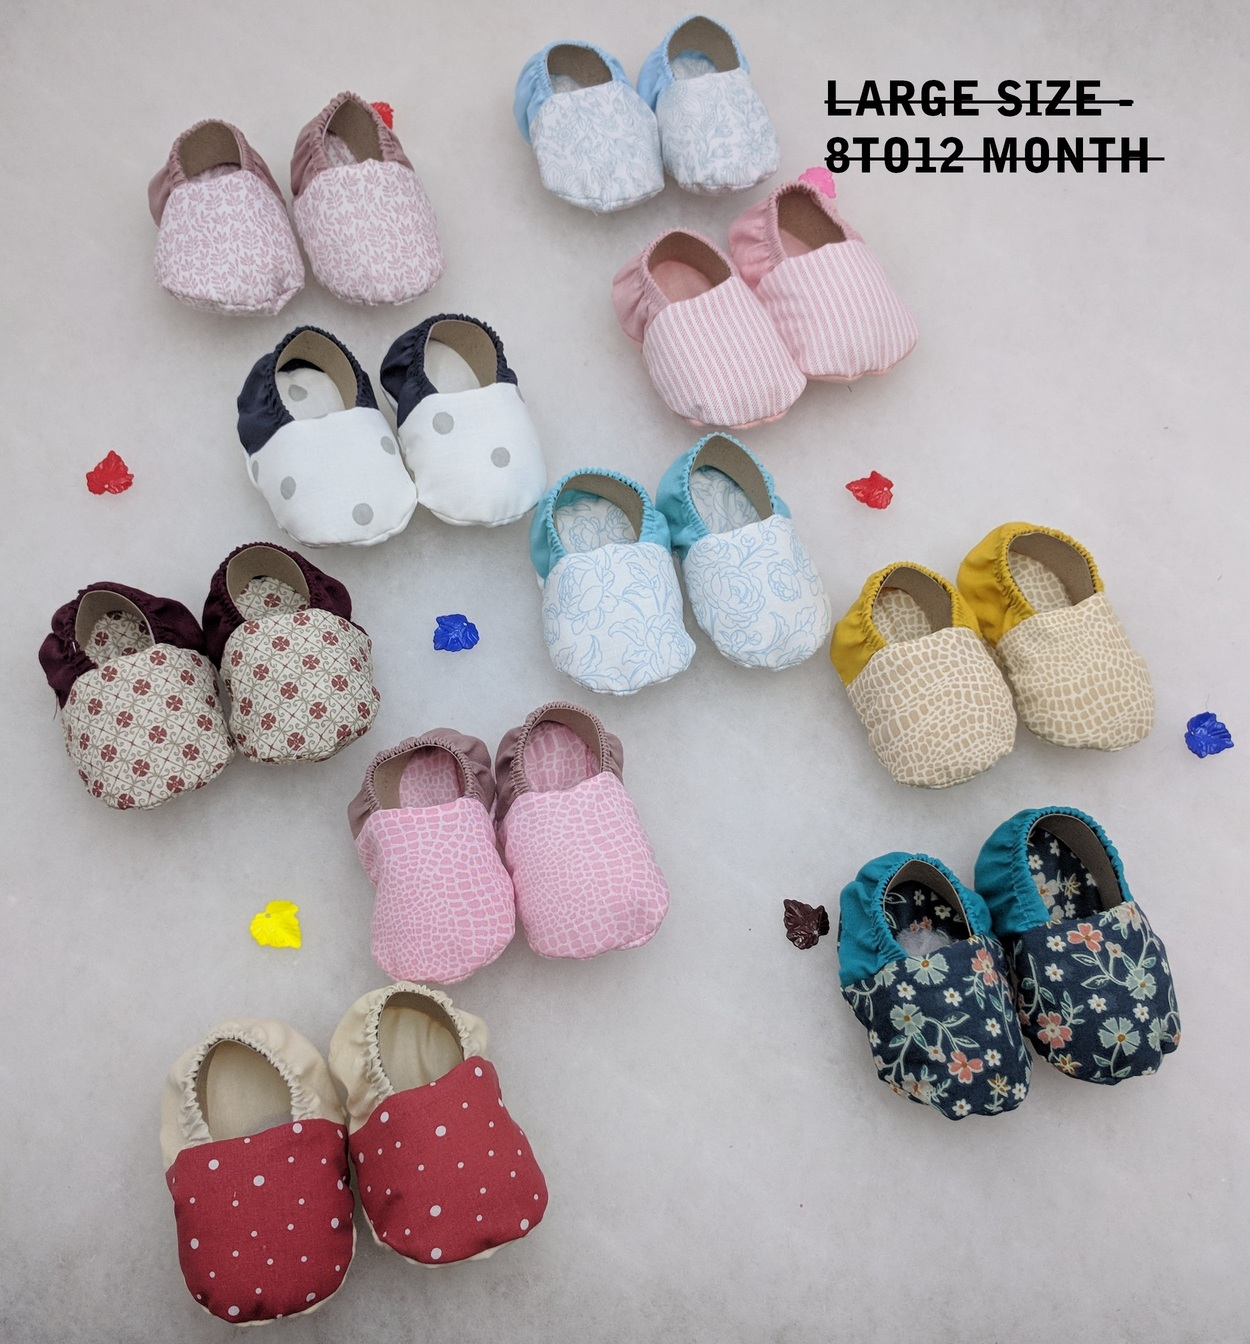 Jack & Jill - Jack & Jill - New Born Baby Footwear Soft Cotton Shoes / Booties Pack of 10 Pair